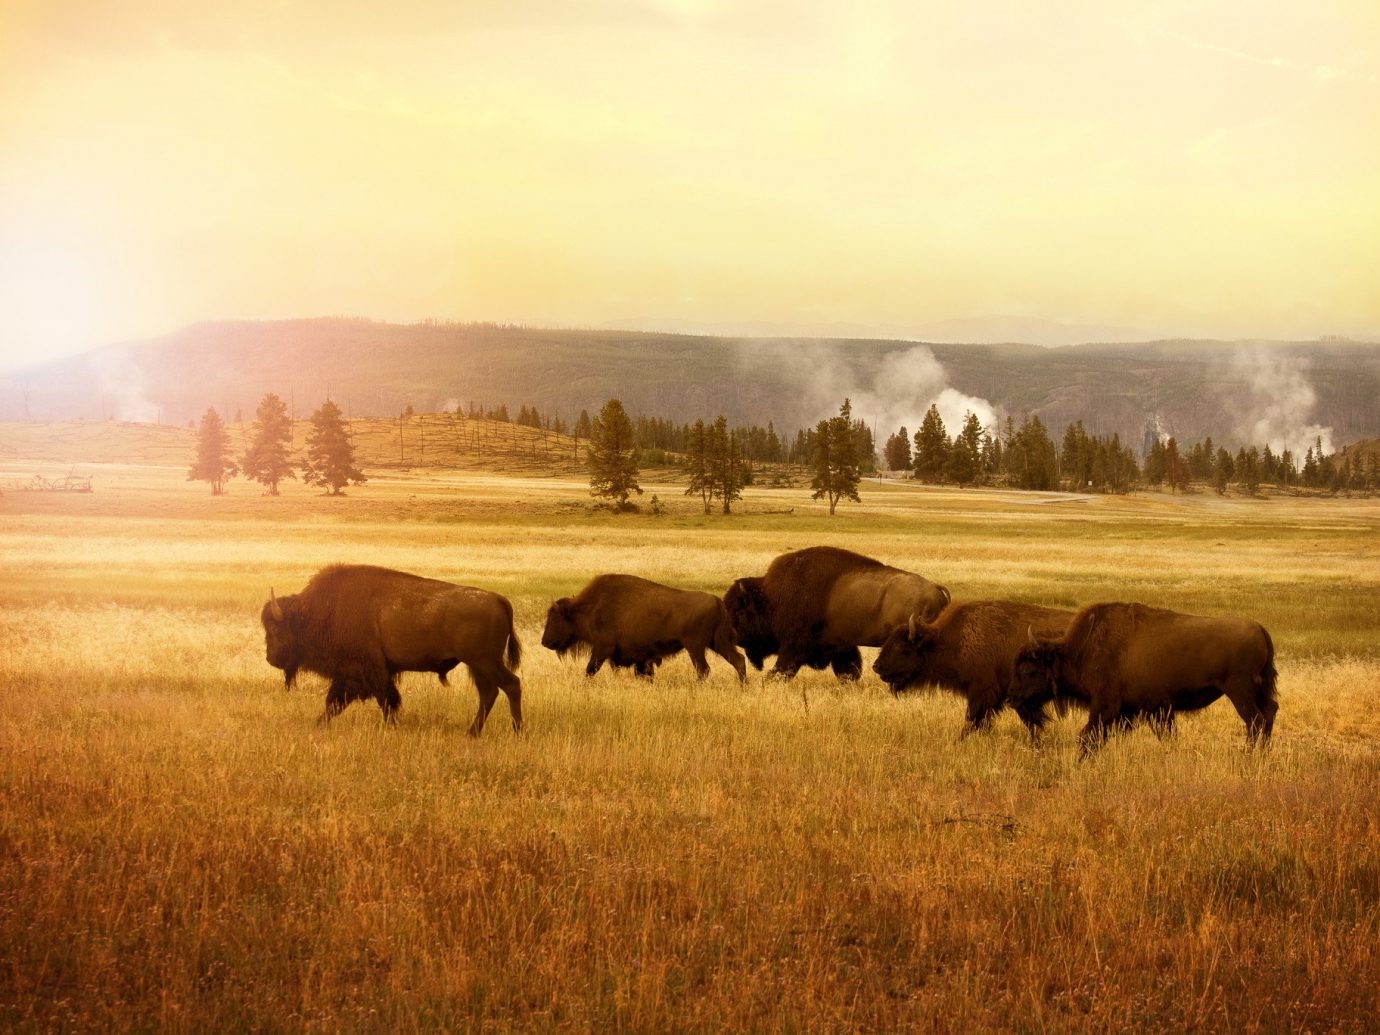 National Parks Outdoors + Adventure Trip Ideas grass outdoor sky cow field grazing habitat herd standing pasture grassland atmospheric phenomenon brown natural environment plain fauna ecosystem cattle like mammal prairie Wildlife savanna morning group steppe cattle grassy meadow bison cloudy clouds lush day colored